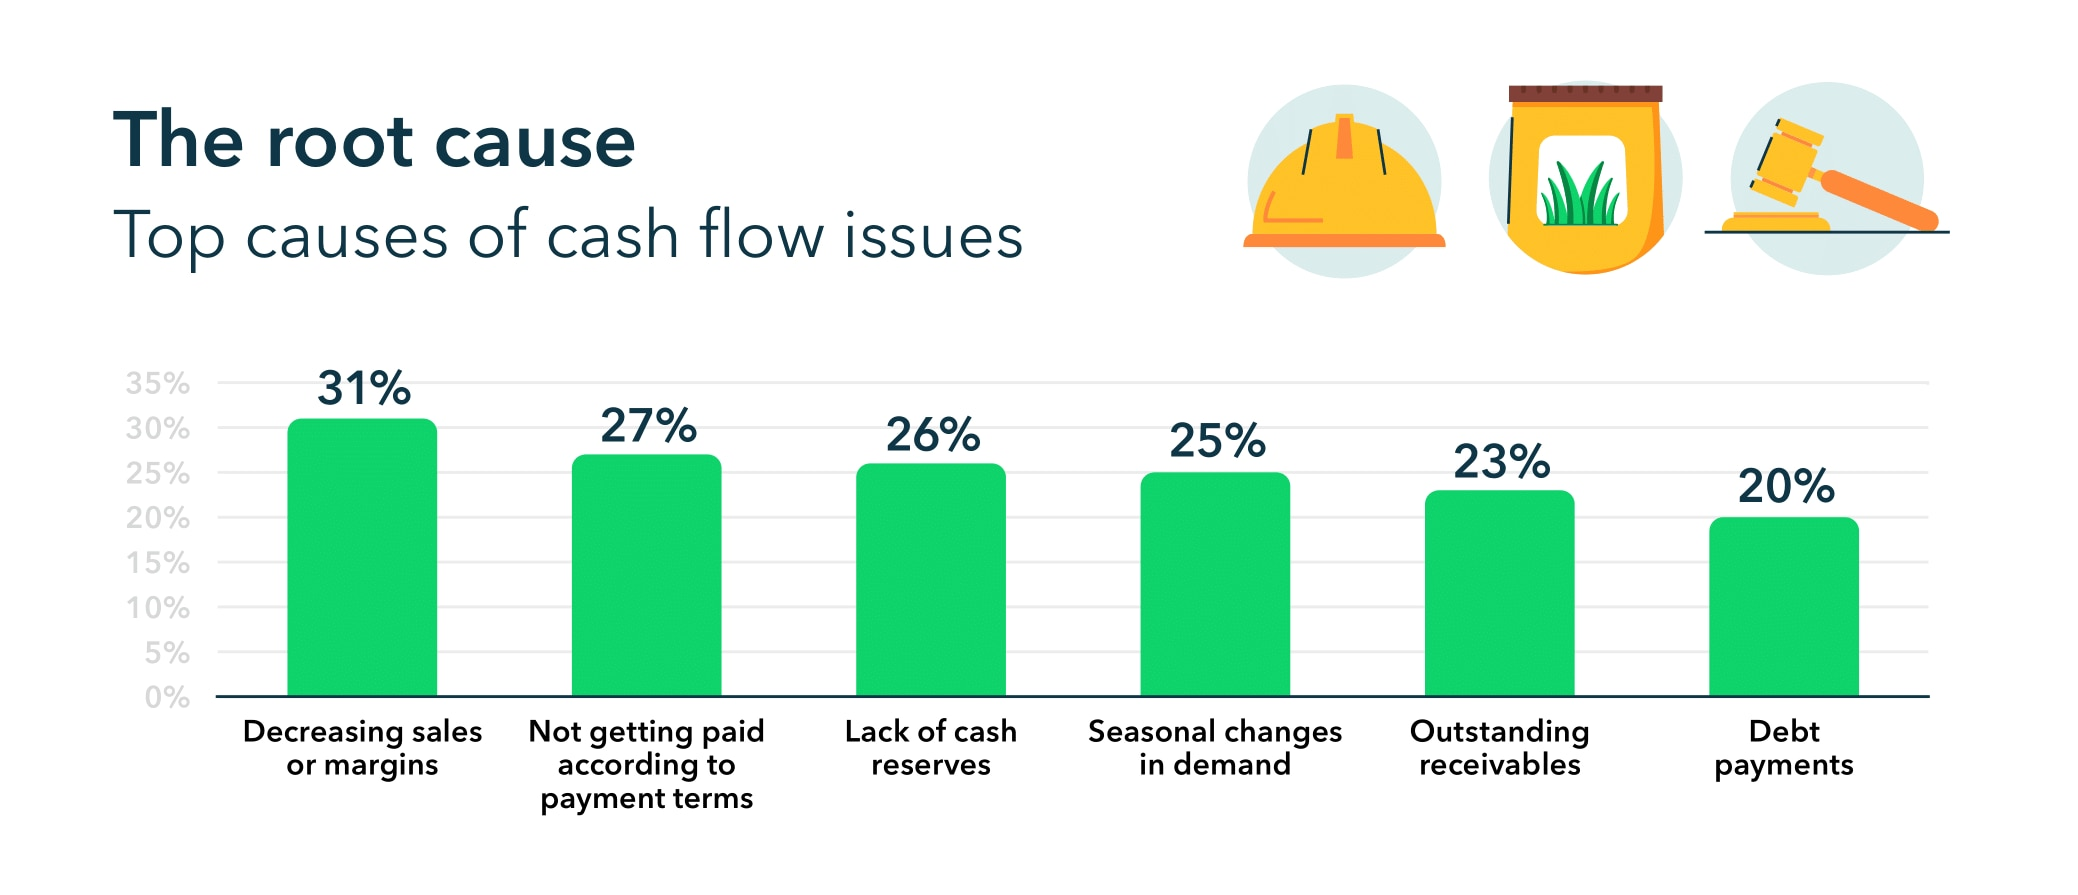 Top causes of cash flow issues: decreasing sales or margins (31%), not getting paid according to payment terms (27%), lack of cash reserves (26%), seasonal changes in demand (25%), outstanding receivables (23%), debt payments (20%).